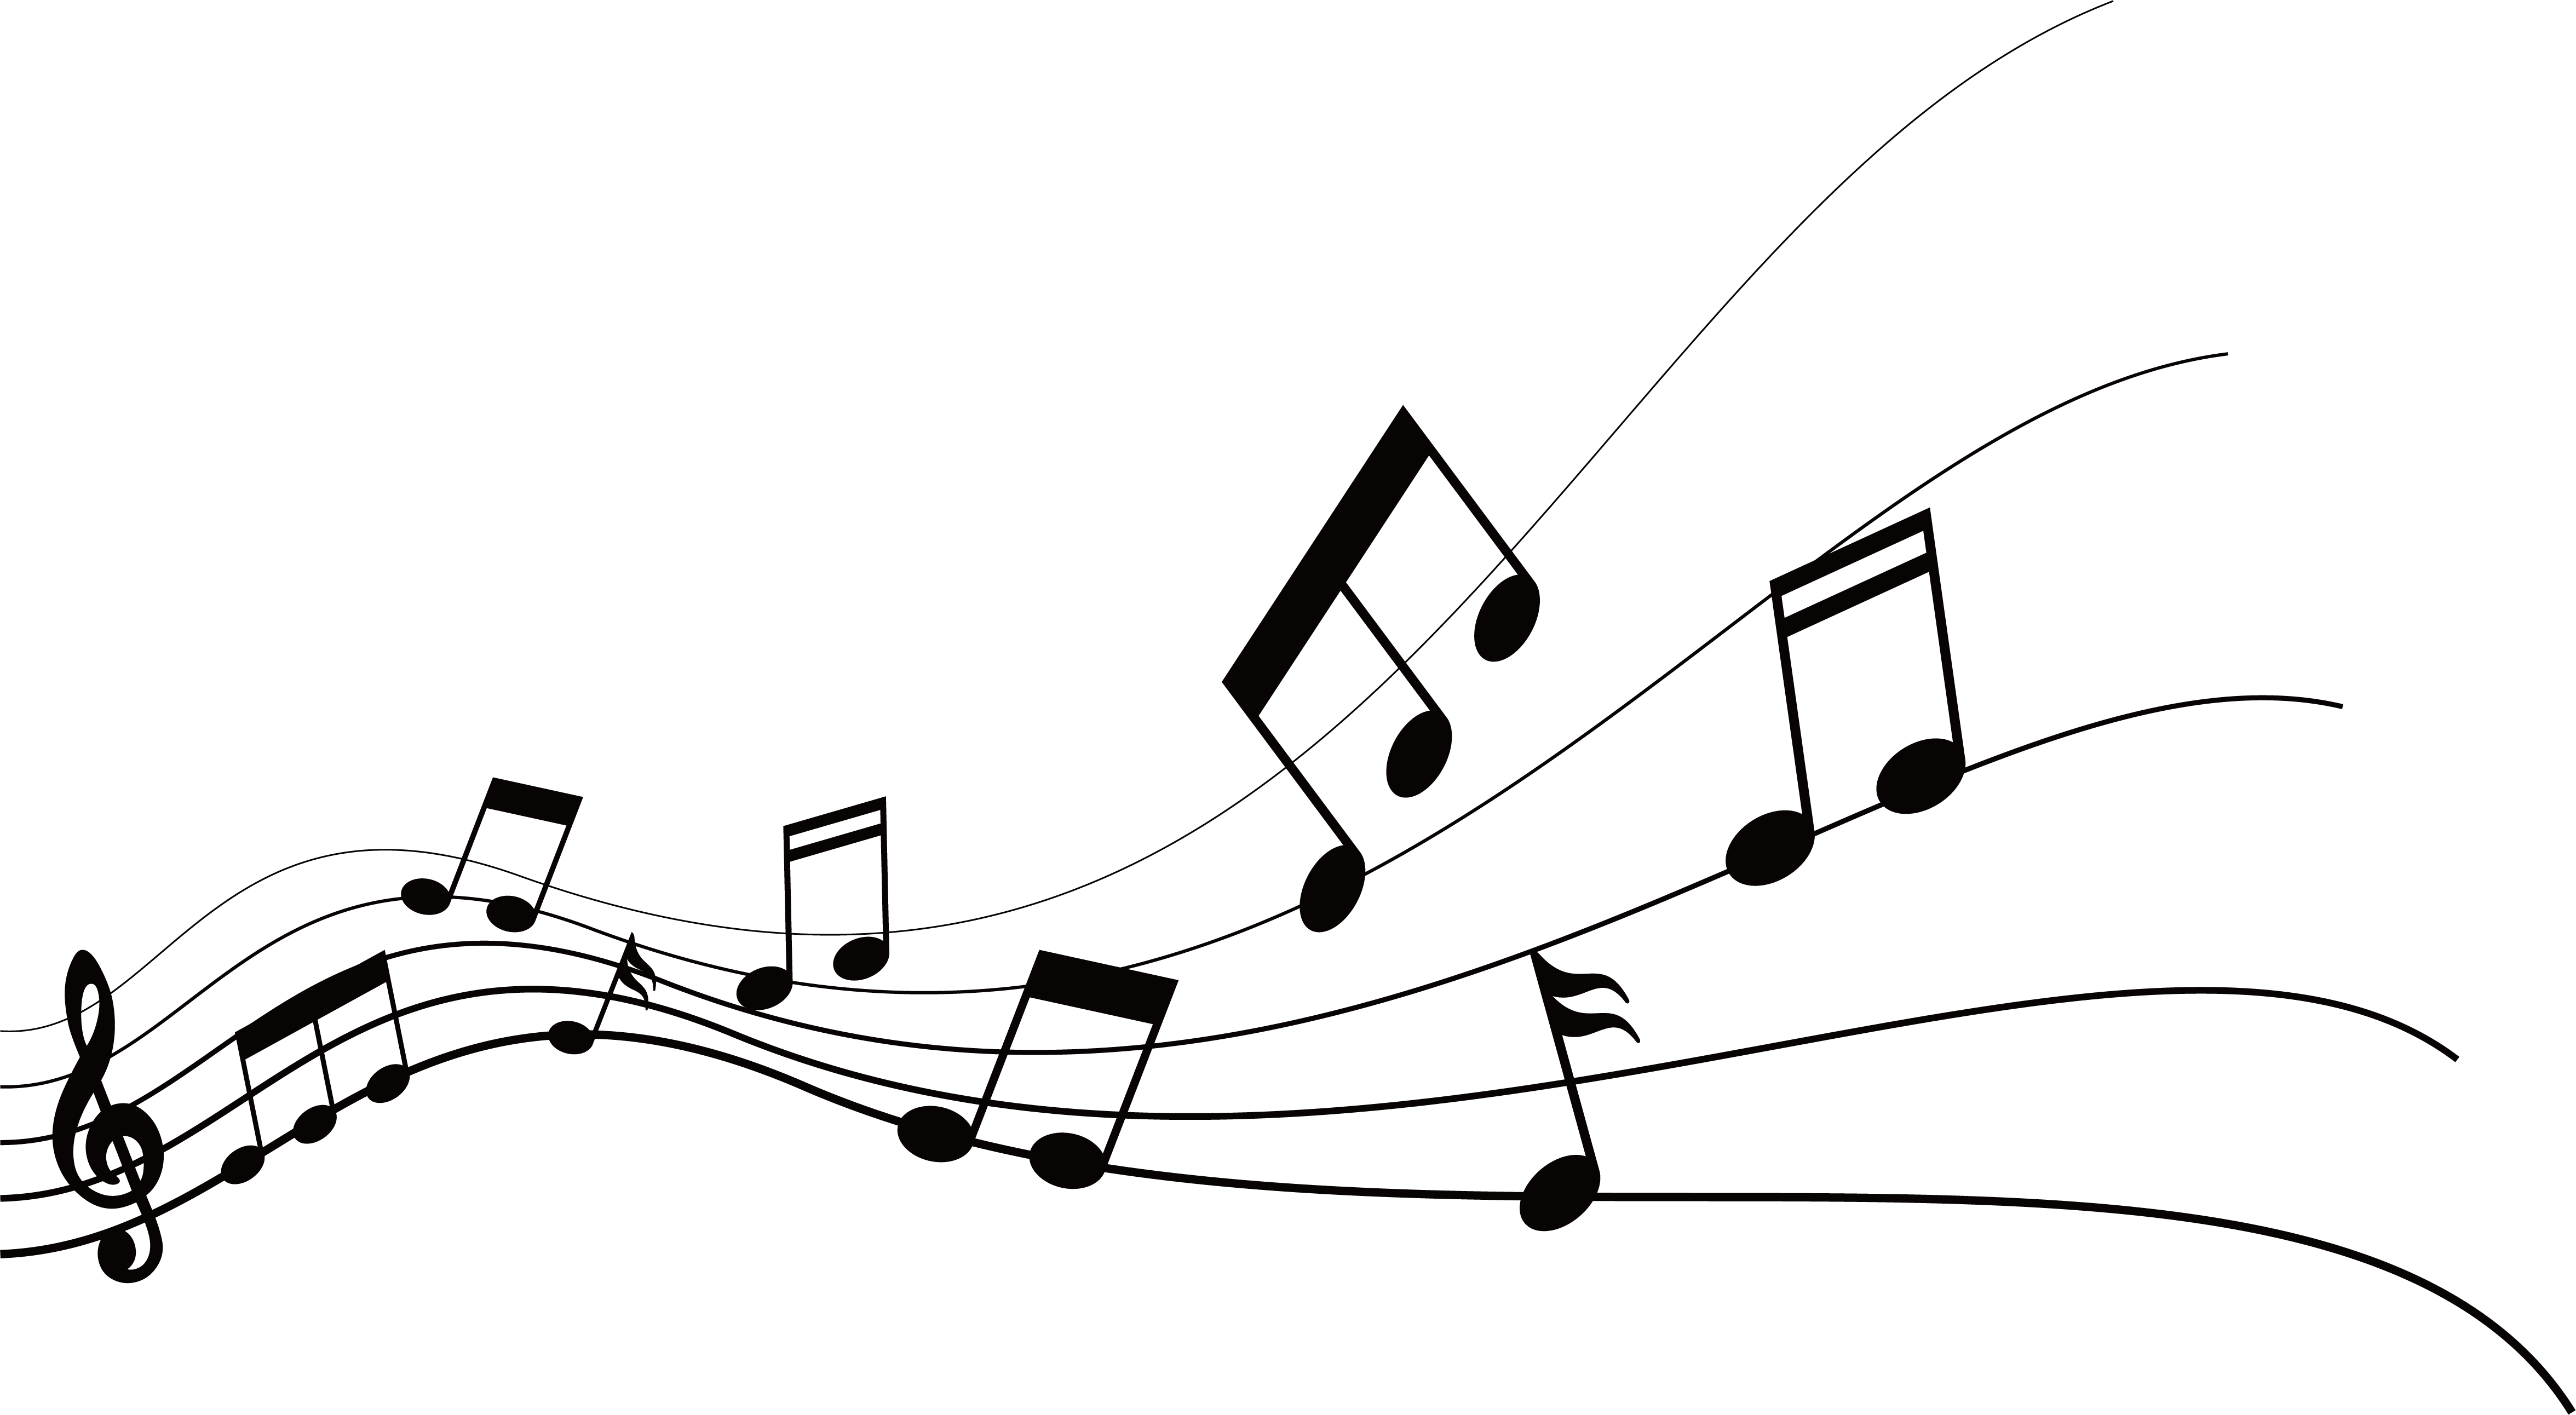 Music note design png. Musical graphic flying notes